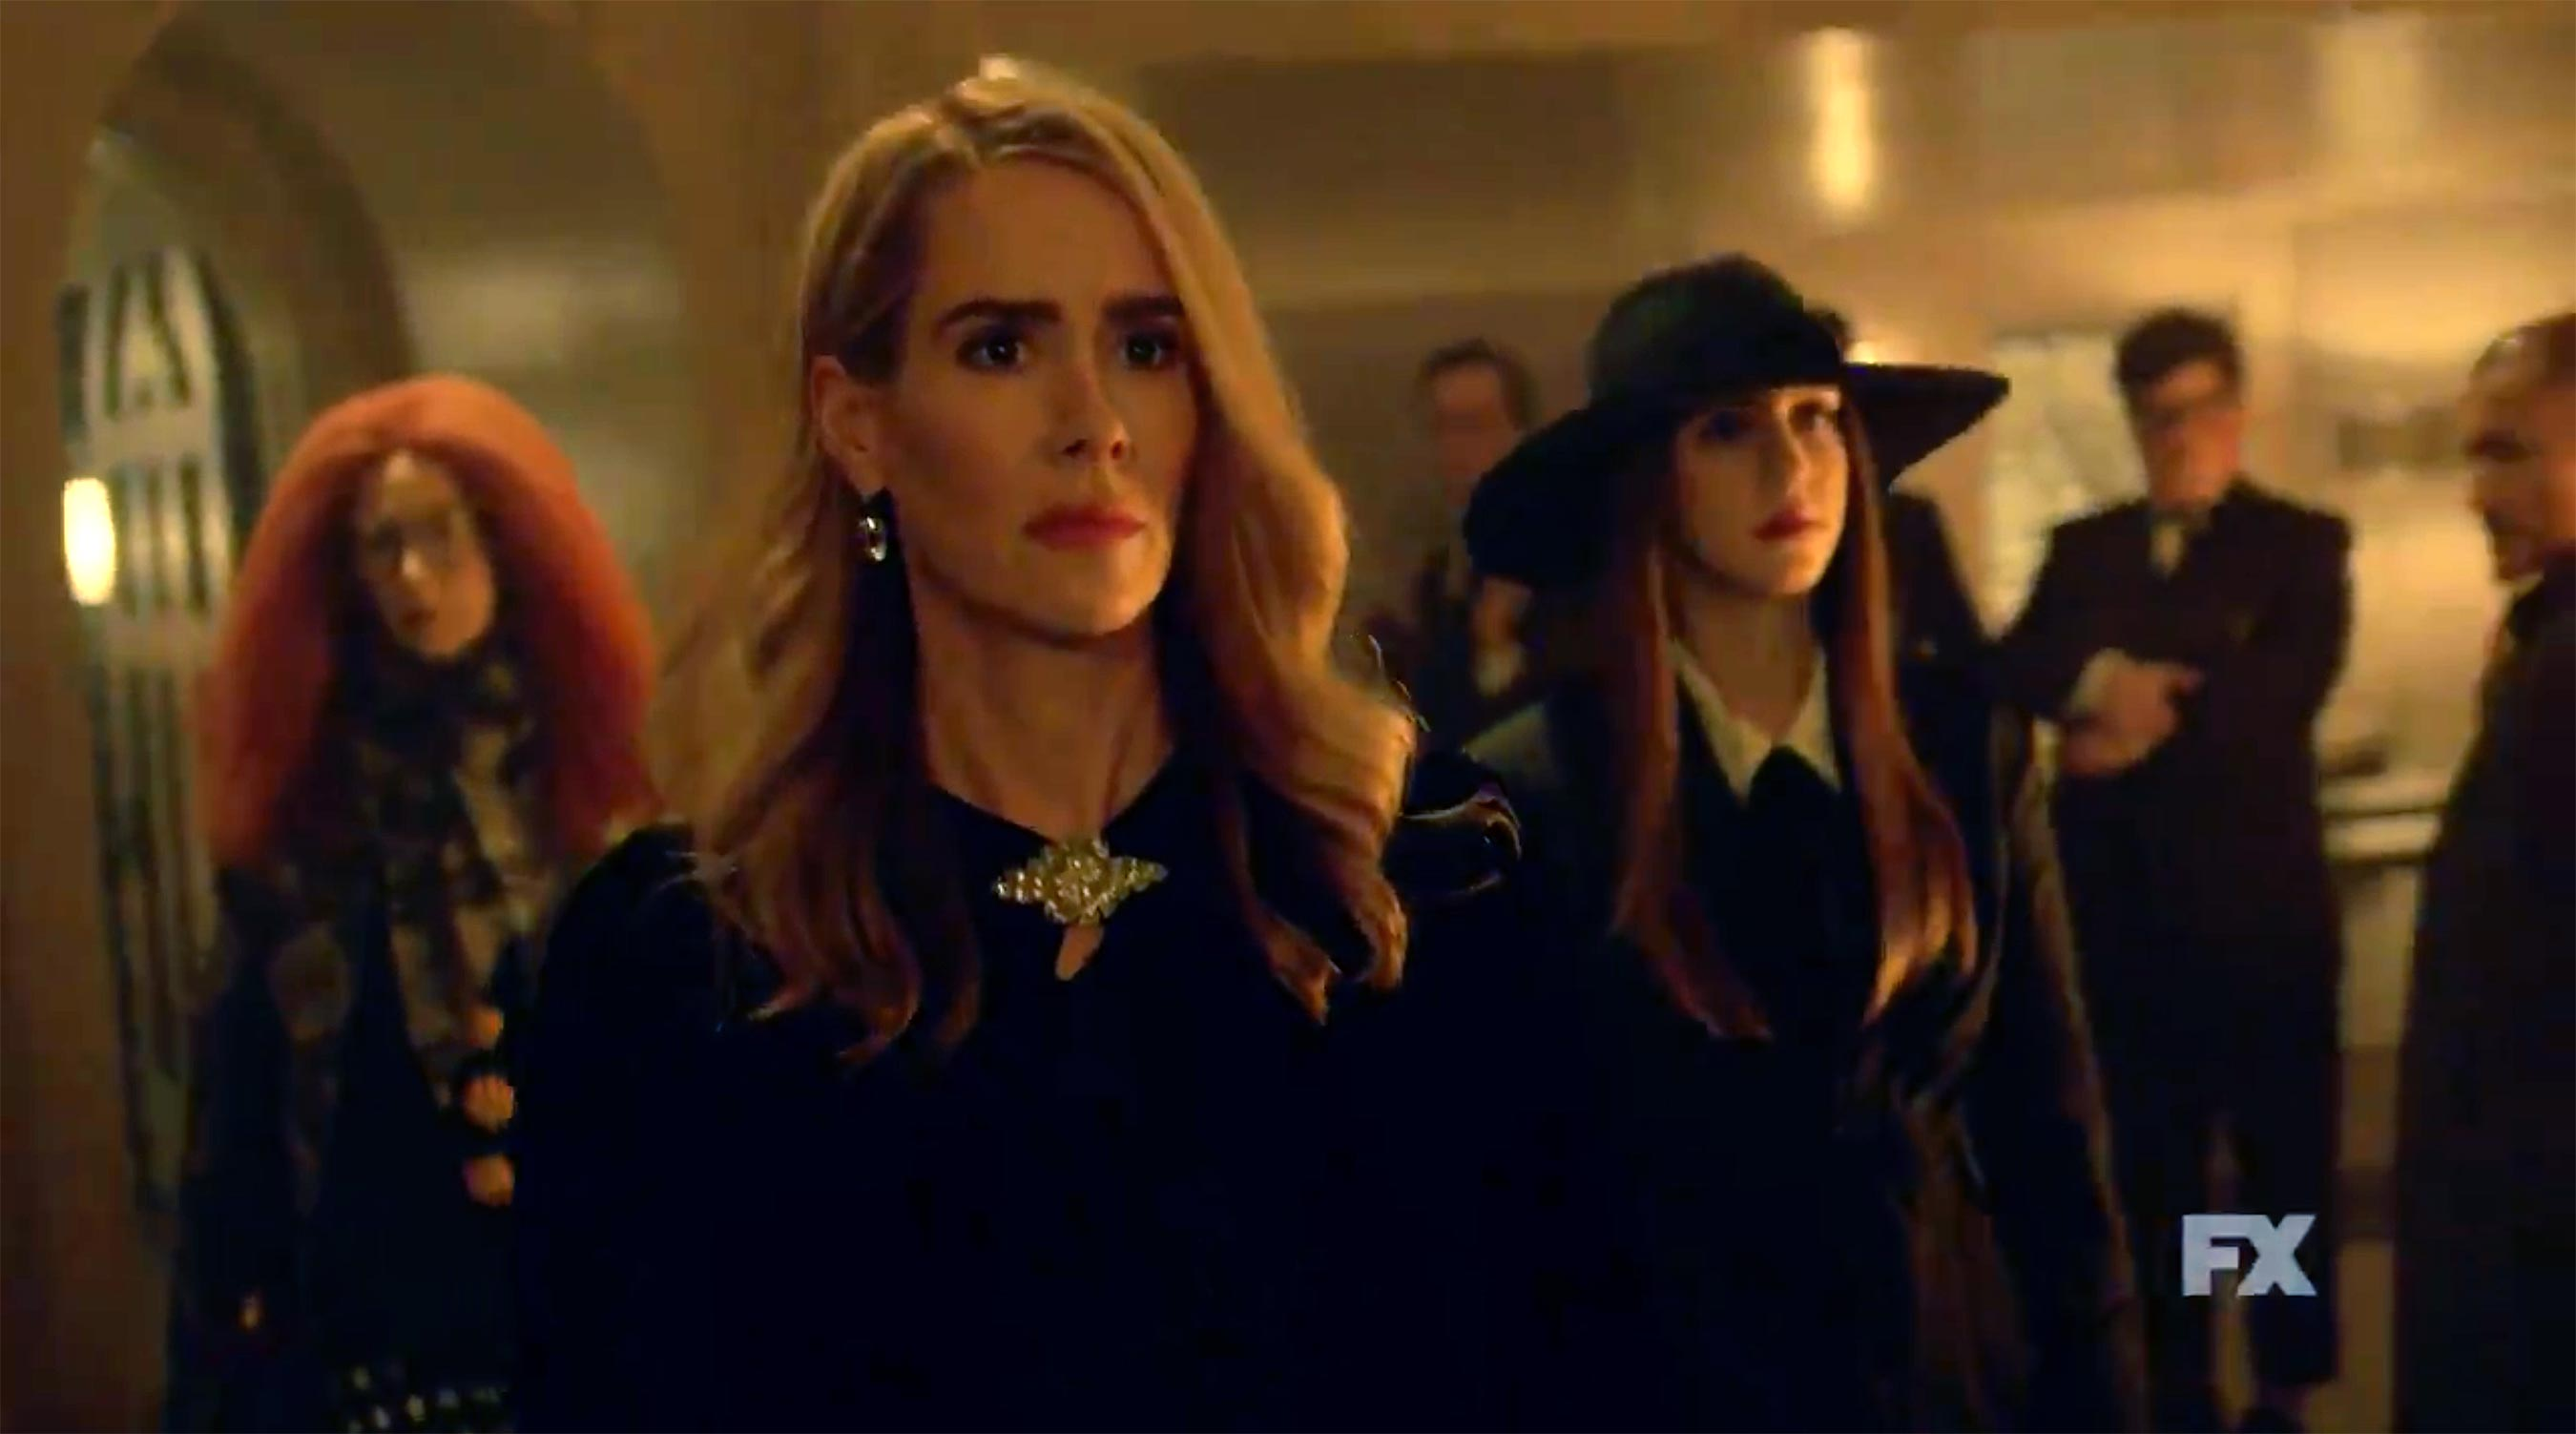 American Horror Story: Coven witches returning after Apocalypse